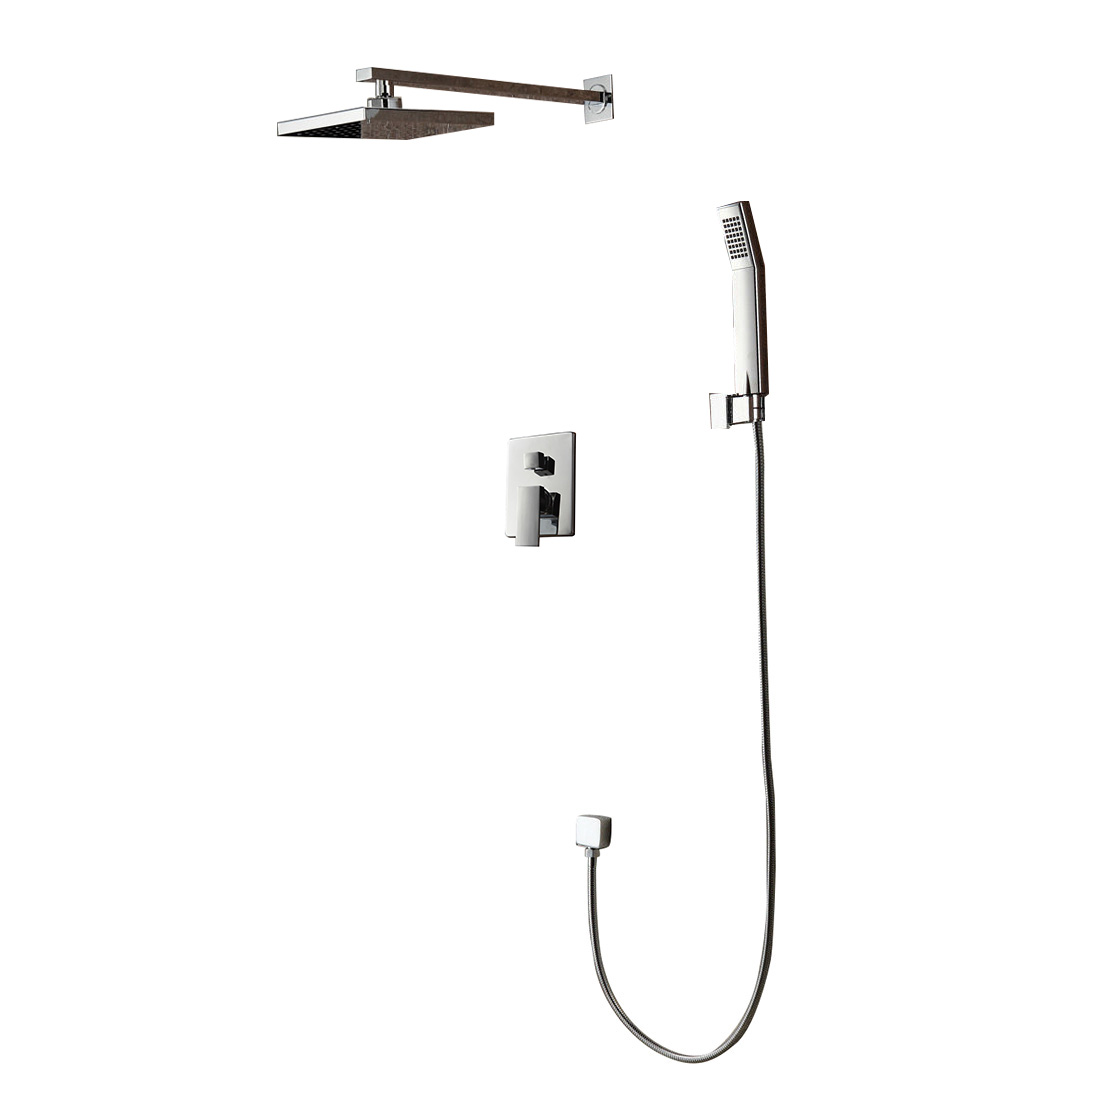 Shower faucet systemPopular Shower Faucet System Buy Cheap Shower Faucet System lots  . Black Shower Head And Faucet. Home Design Ideas